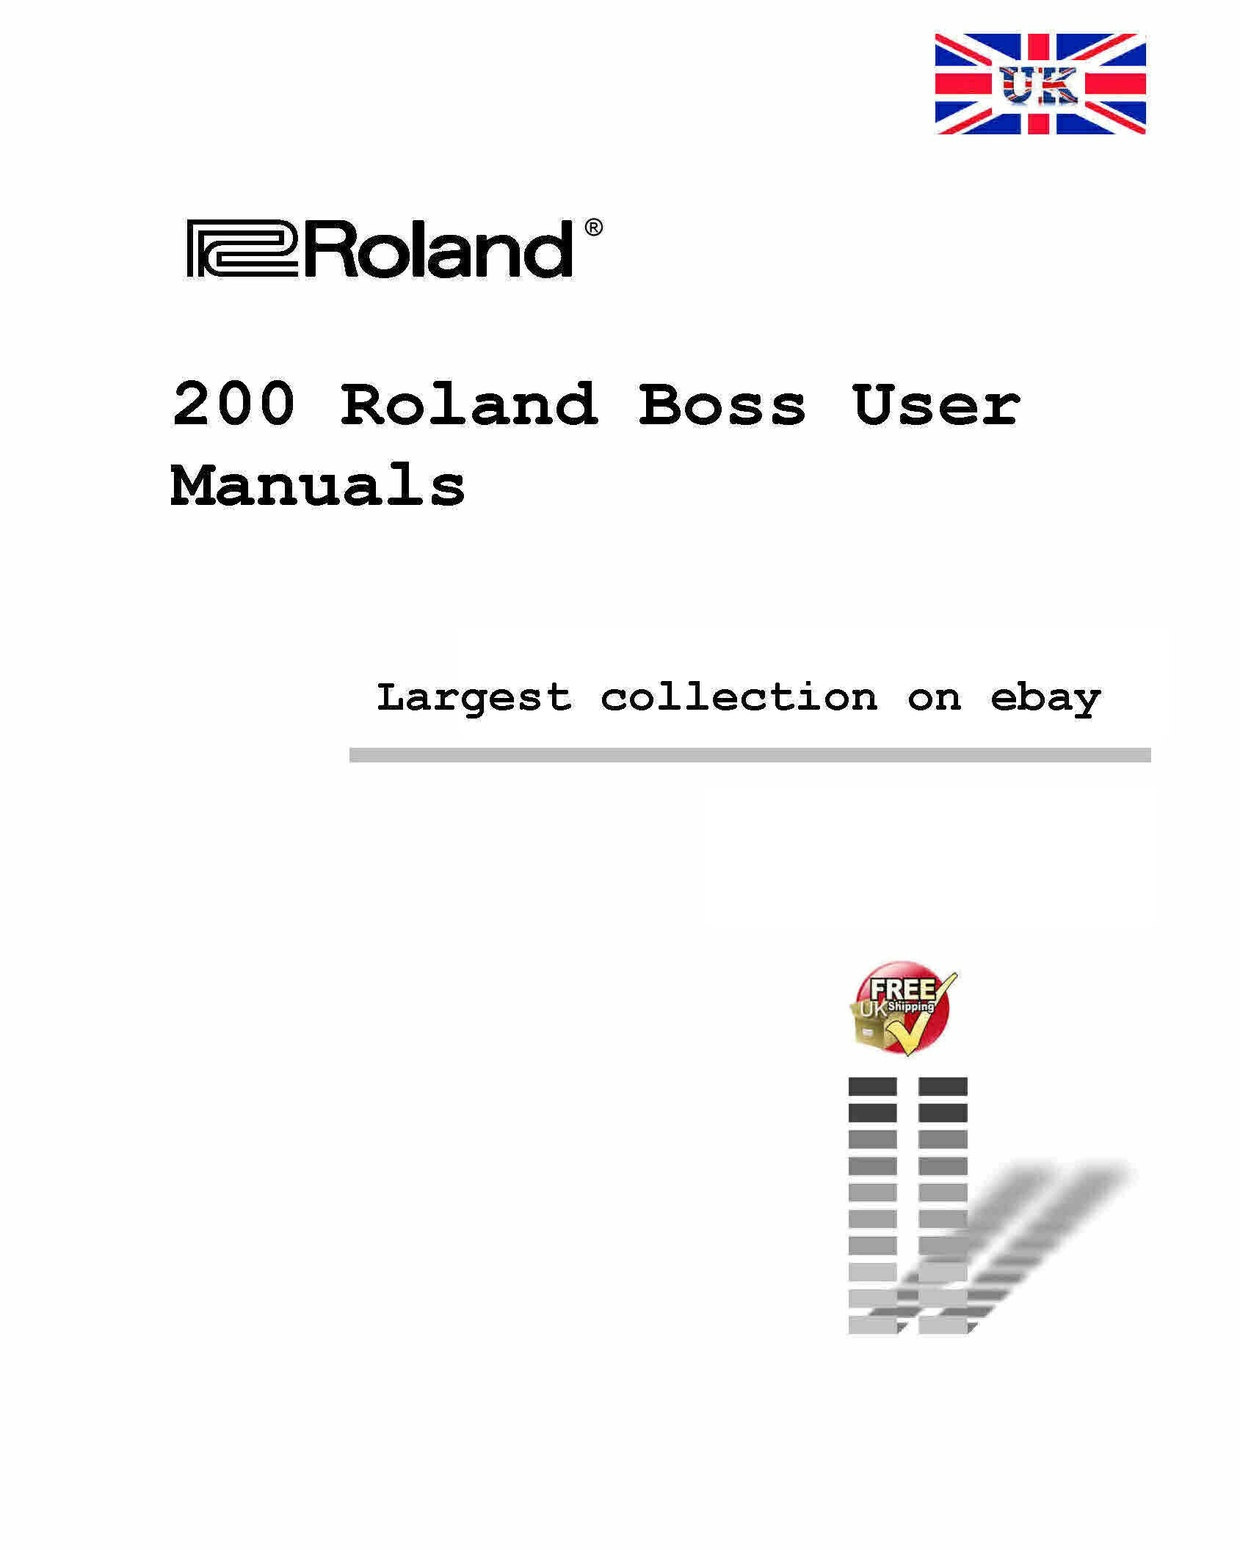 Roland boss manuals for Tech Doctors Boss User Manuals